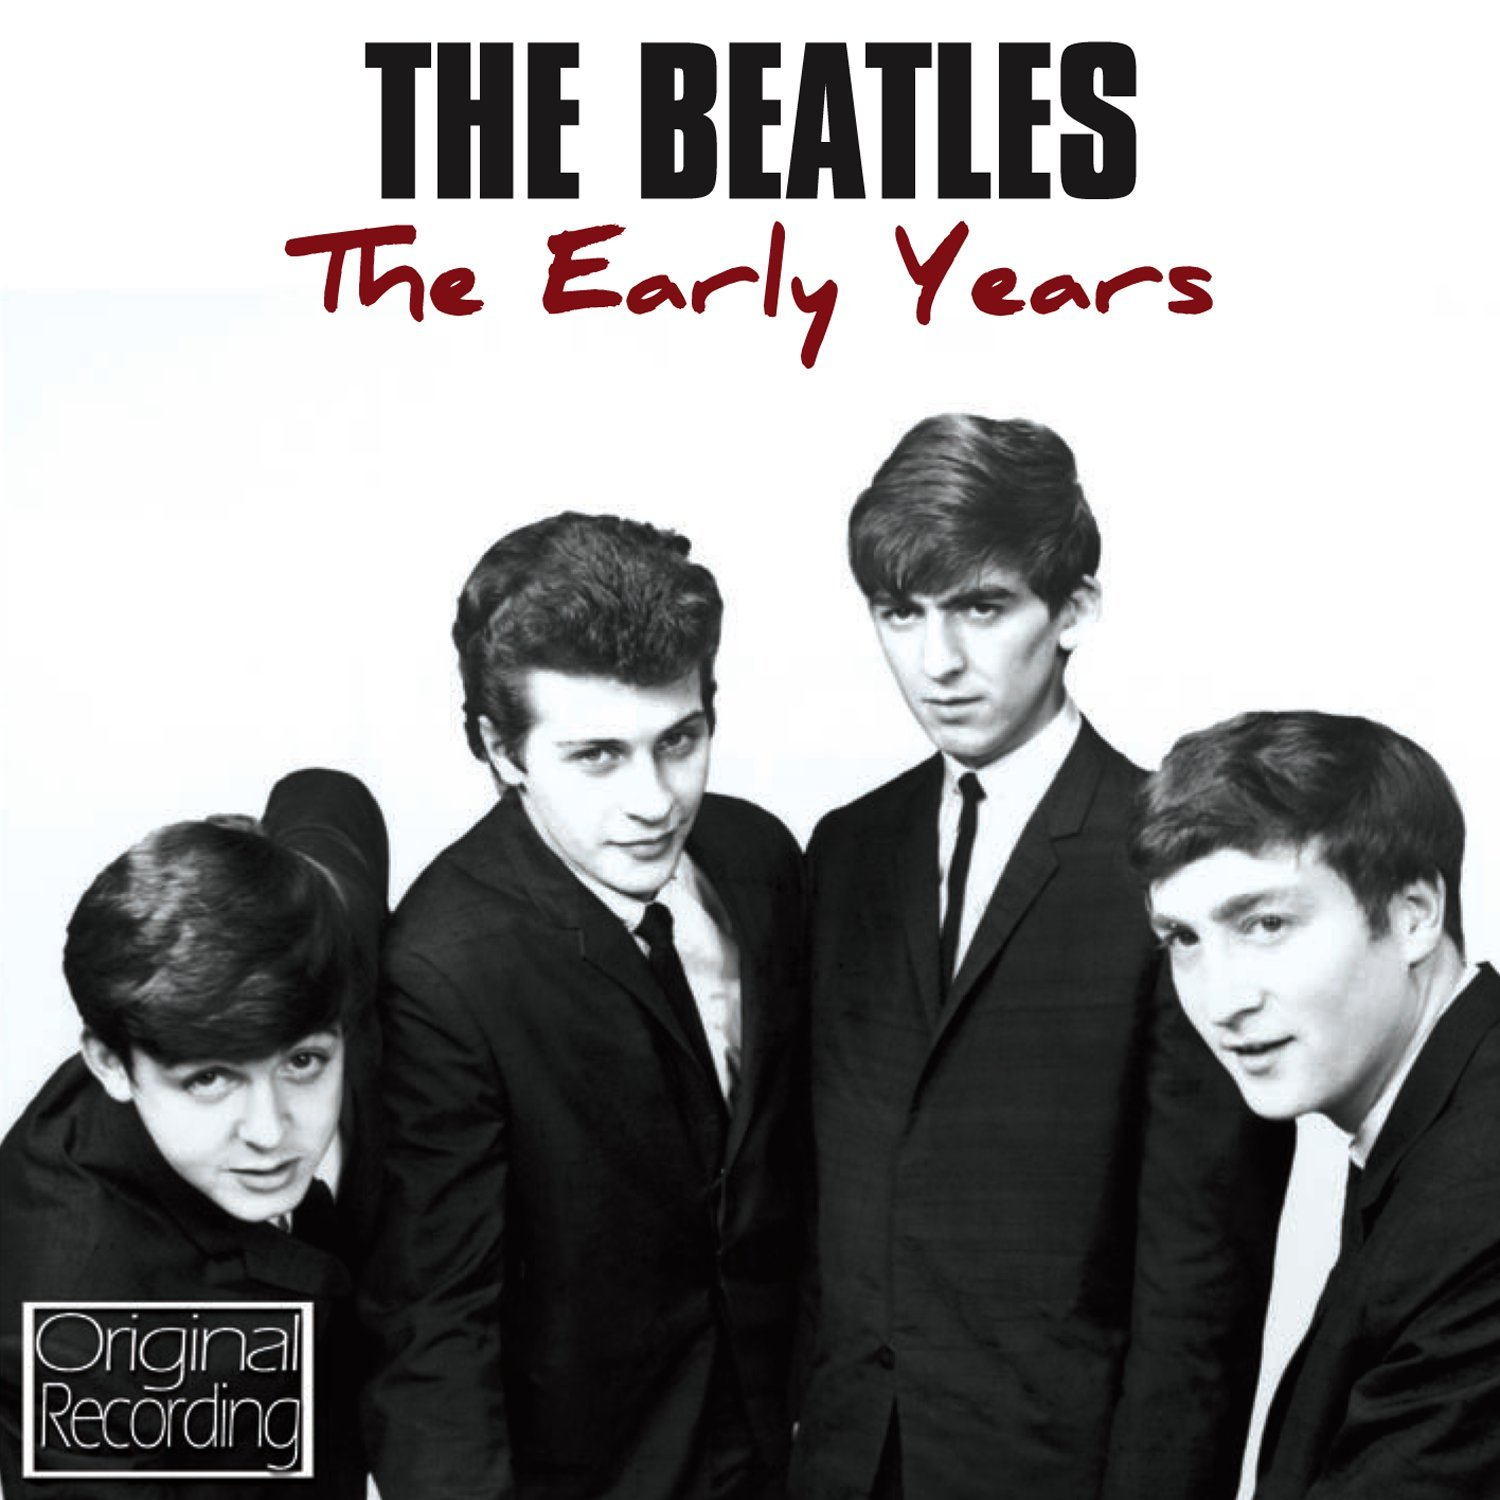 sheridan singles over 50 The beatles with tony sheridan the beatles a1:  roll over beatles tony sheridan and the beat brothers alias beatles a:  45cat for 7 singles .